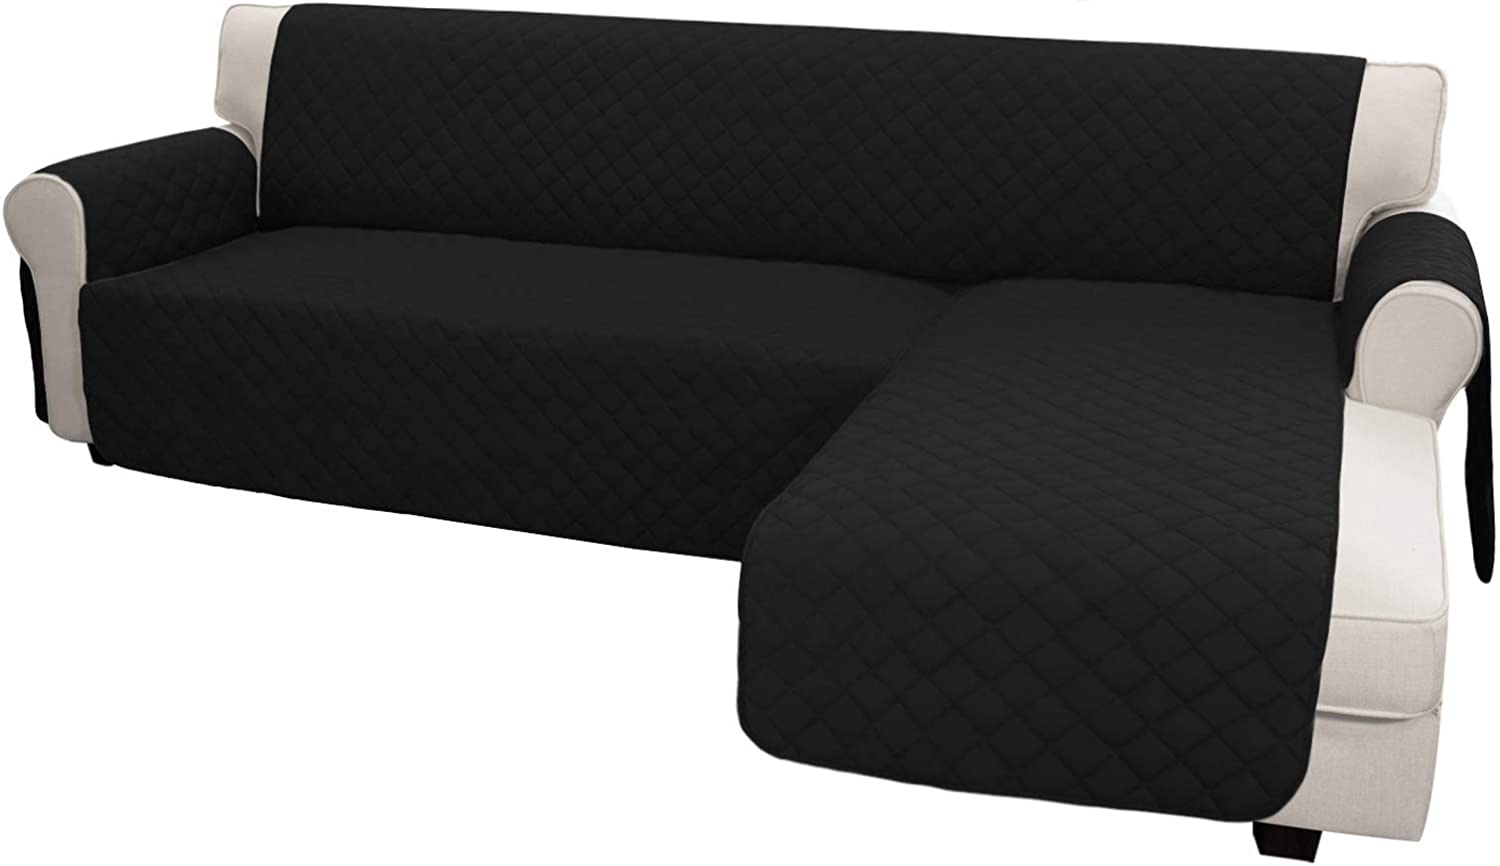 Easy-Going Sofa Slipcover L Shape Sofa Cover Sectional Couch Cover Chaise Slip Cover Reversible Sofa Cover Furniture Protector Cover for Pets Kids Children Dog Cat(Large,Black/Black)